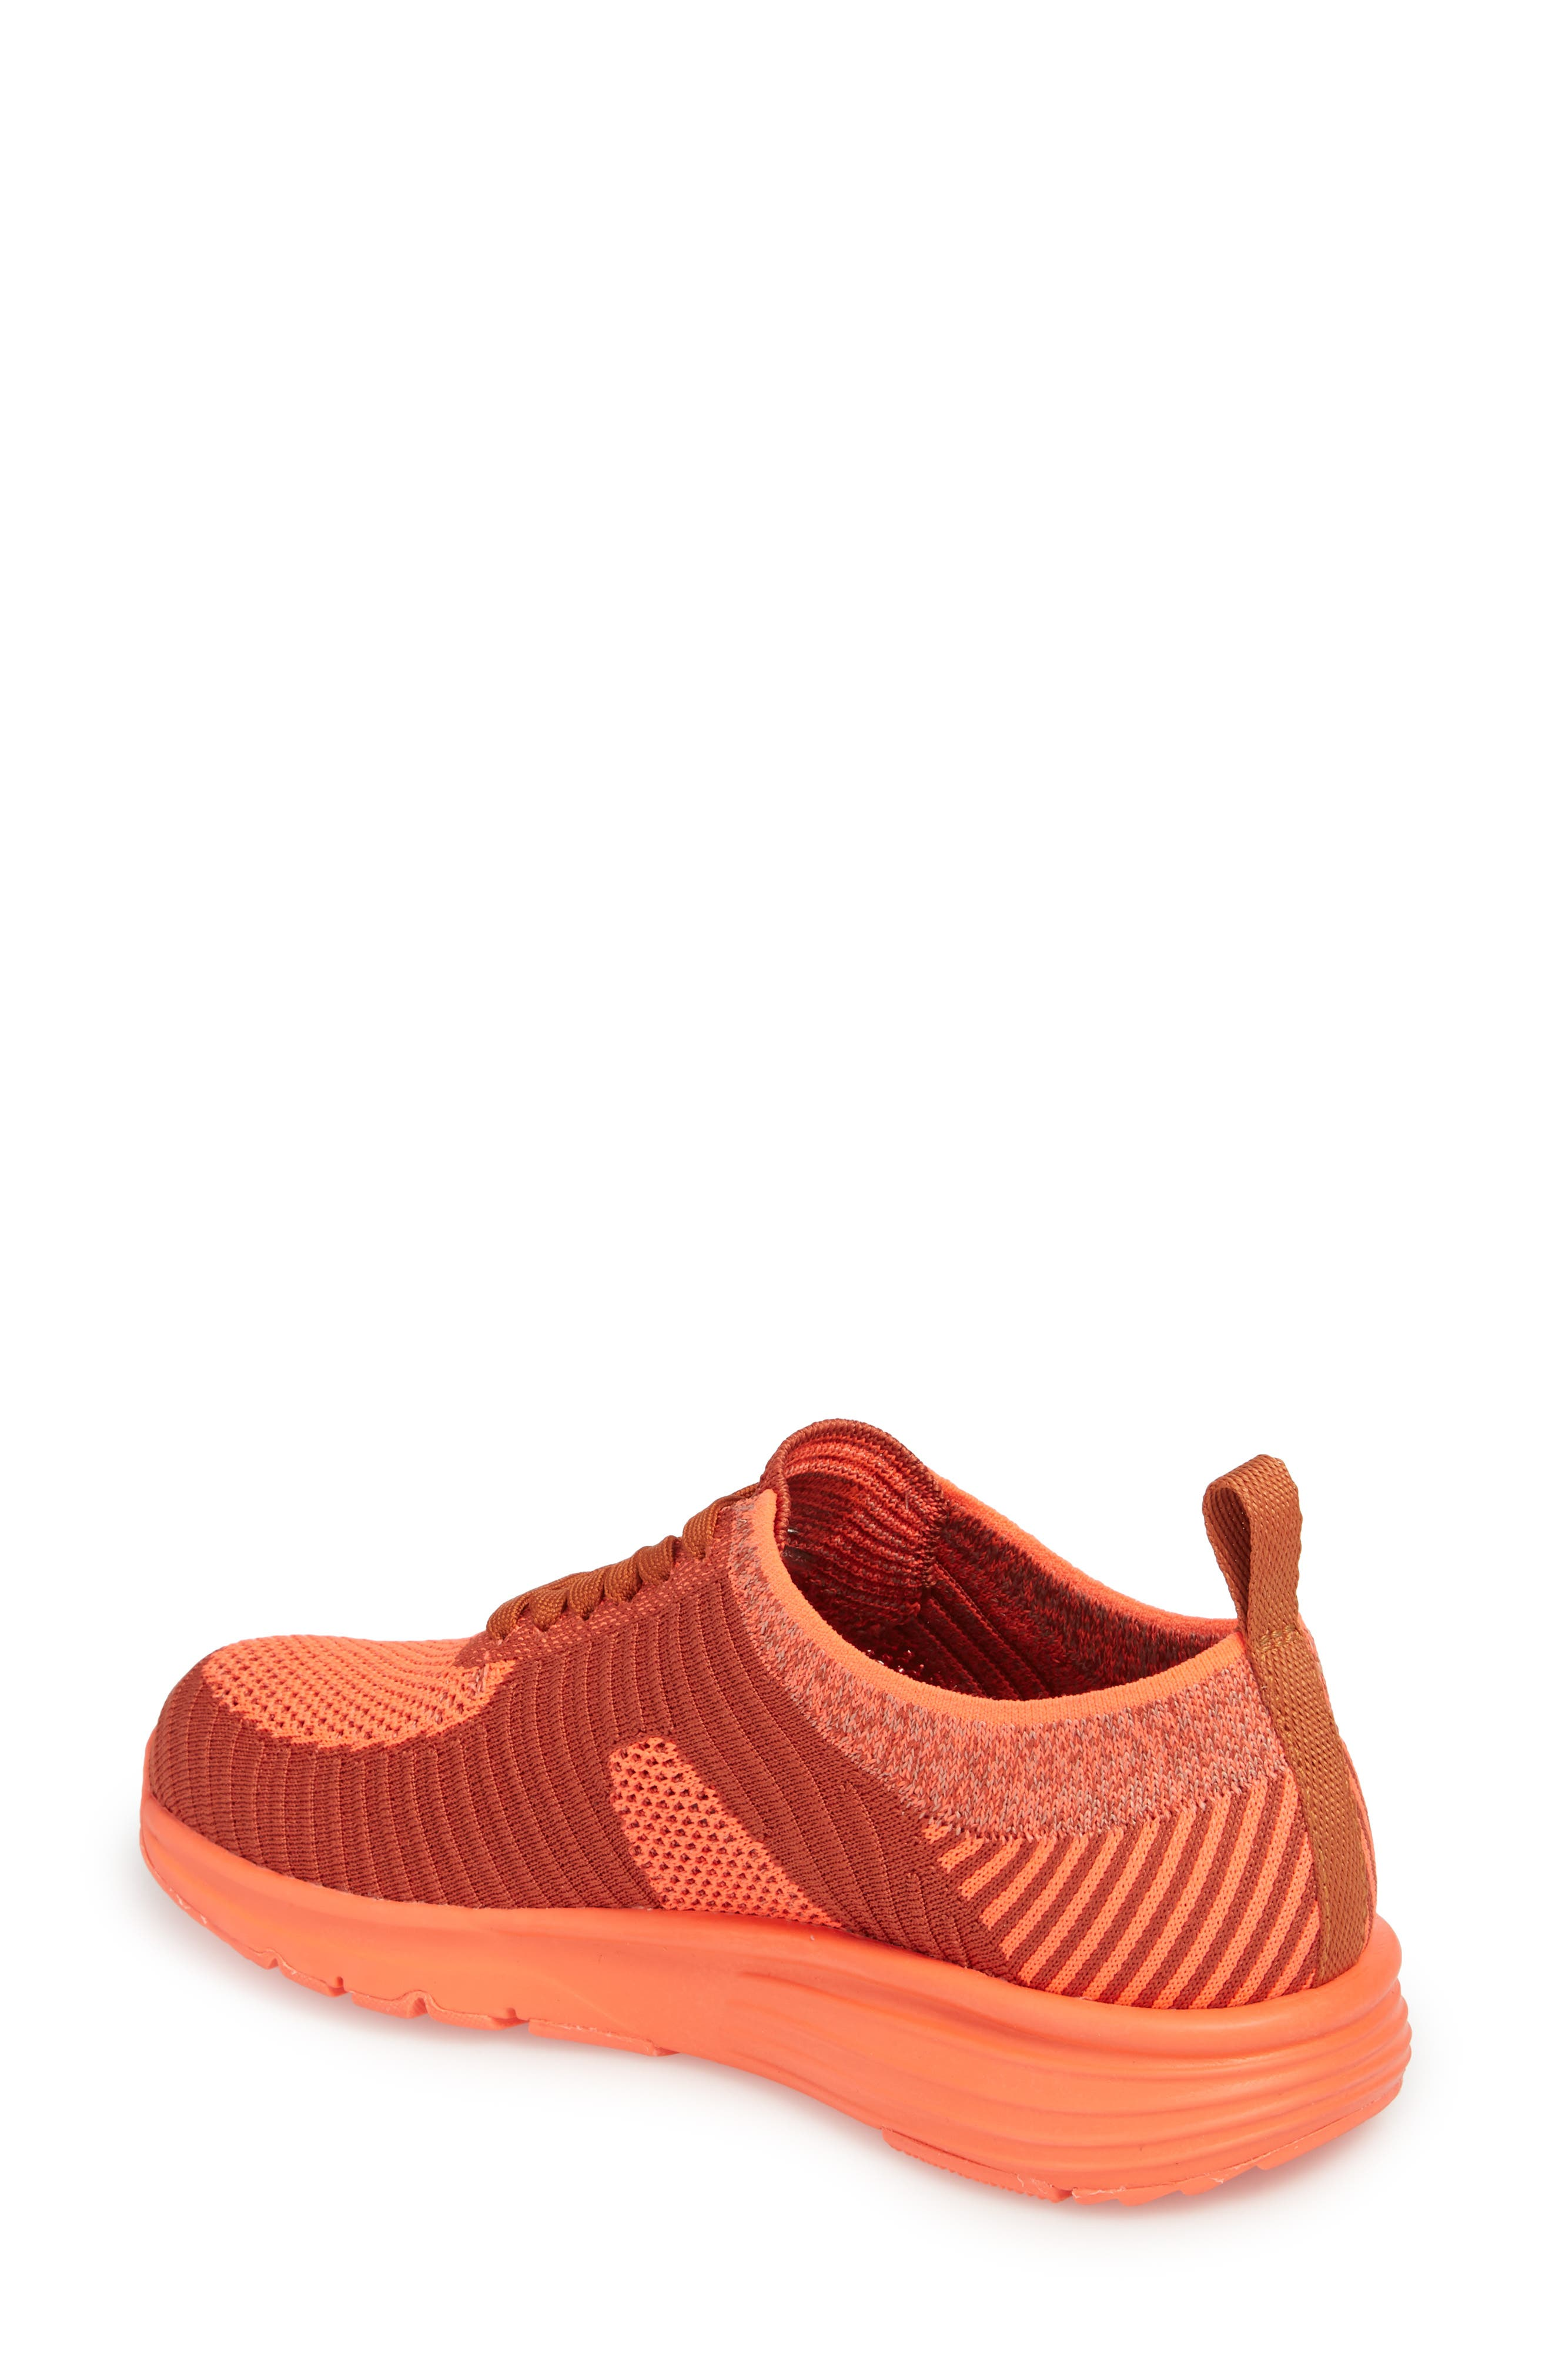 Drift Knit Sneaker,                             Alternate thumbnail 2, color,                             RED - ASSORTED FABRIC